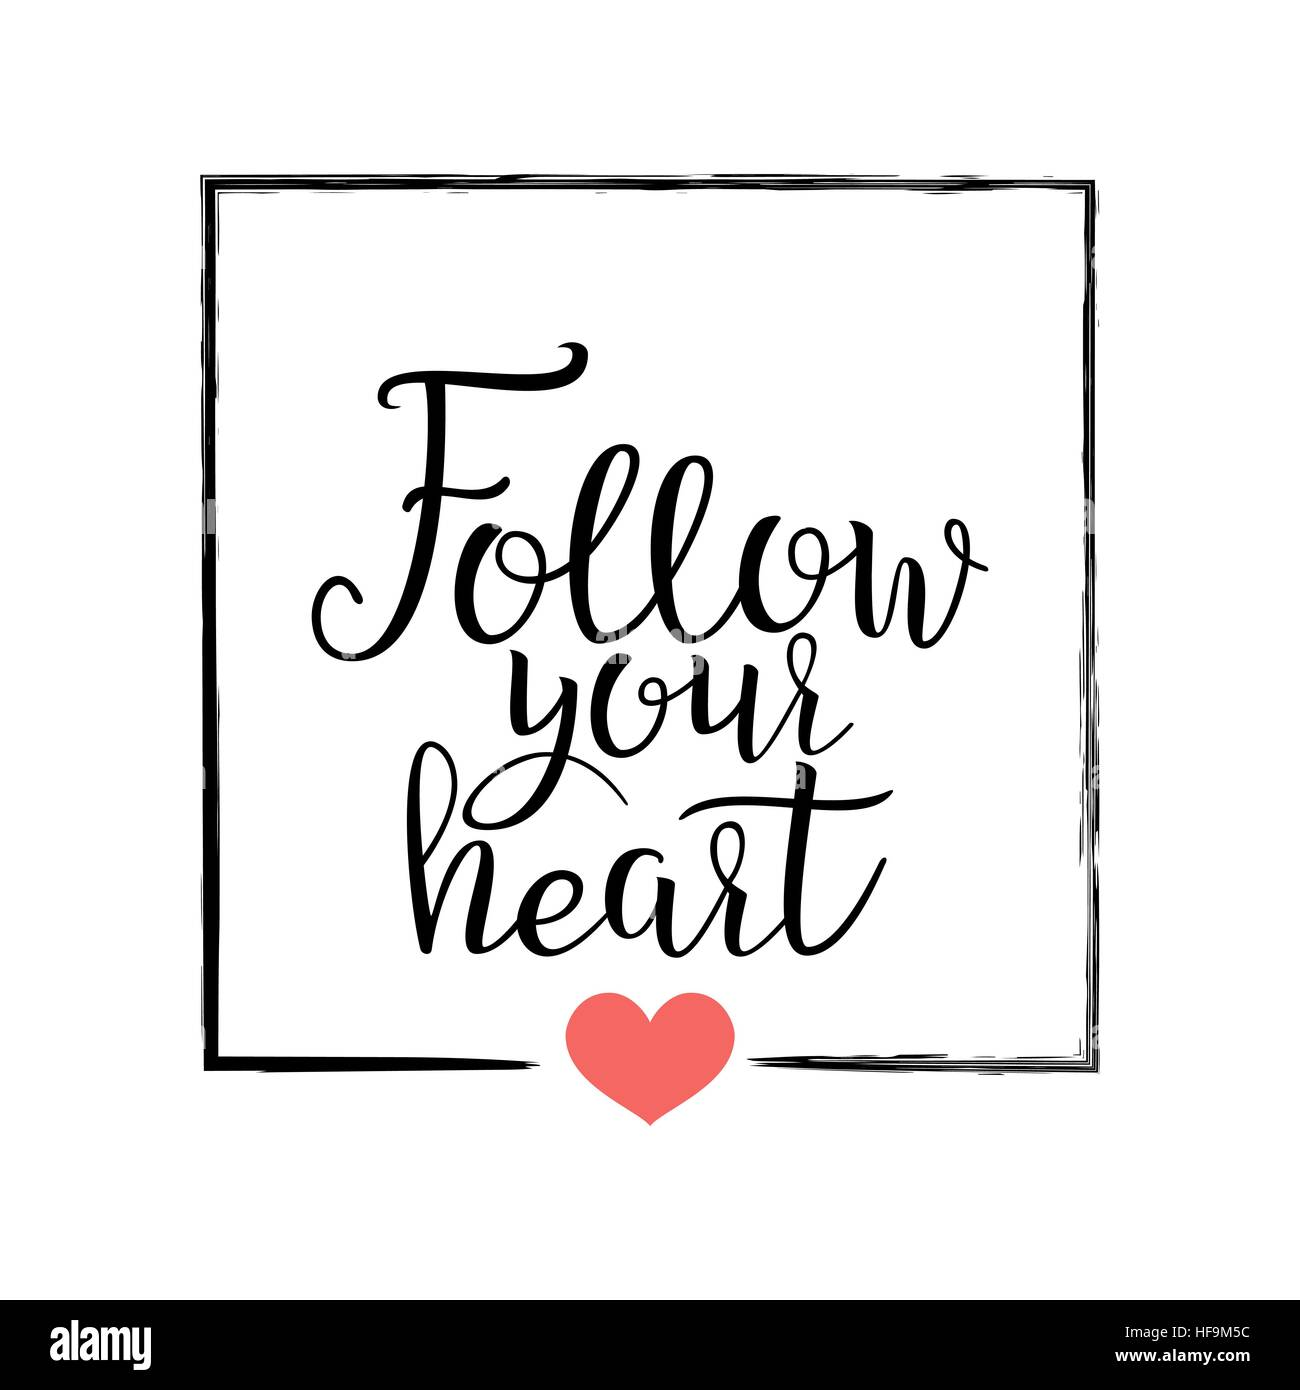 Follow Your Heart Heart Handwritten Lettering Quote About Love For